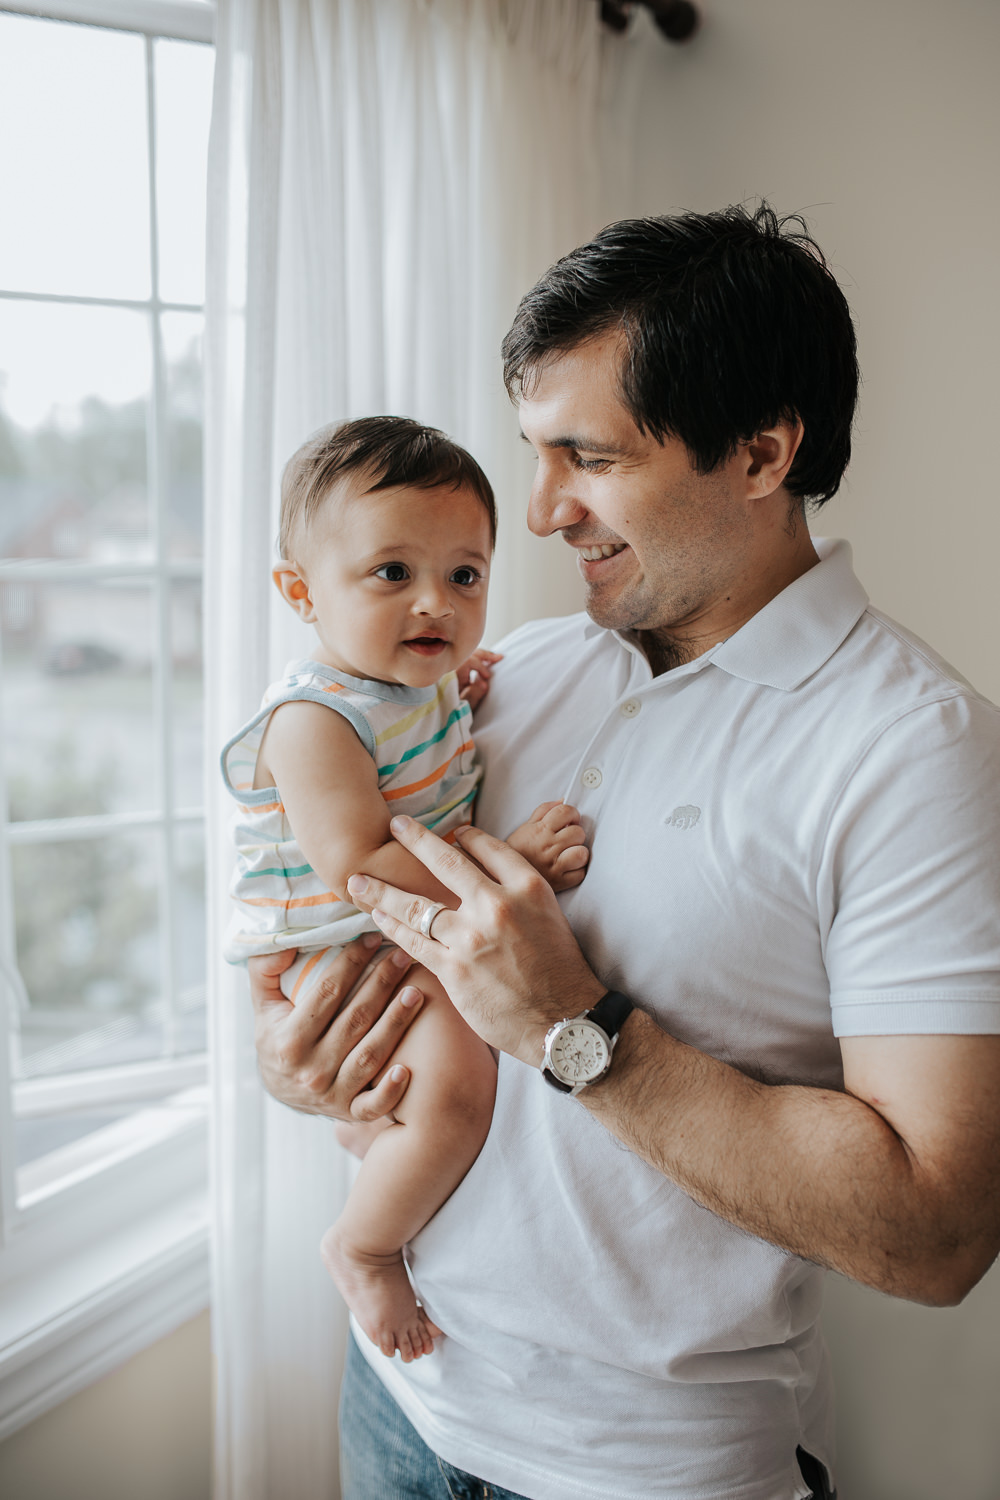 dad standing, holding and smiling at 8 month old baby boy who is smiling up at the ceiling - Newmarket In-Home Photography